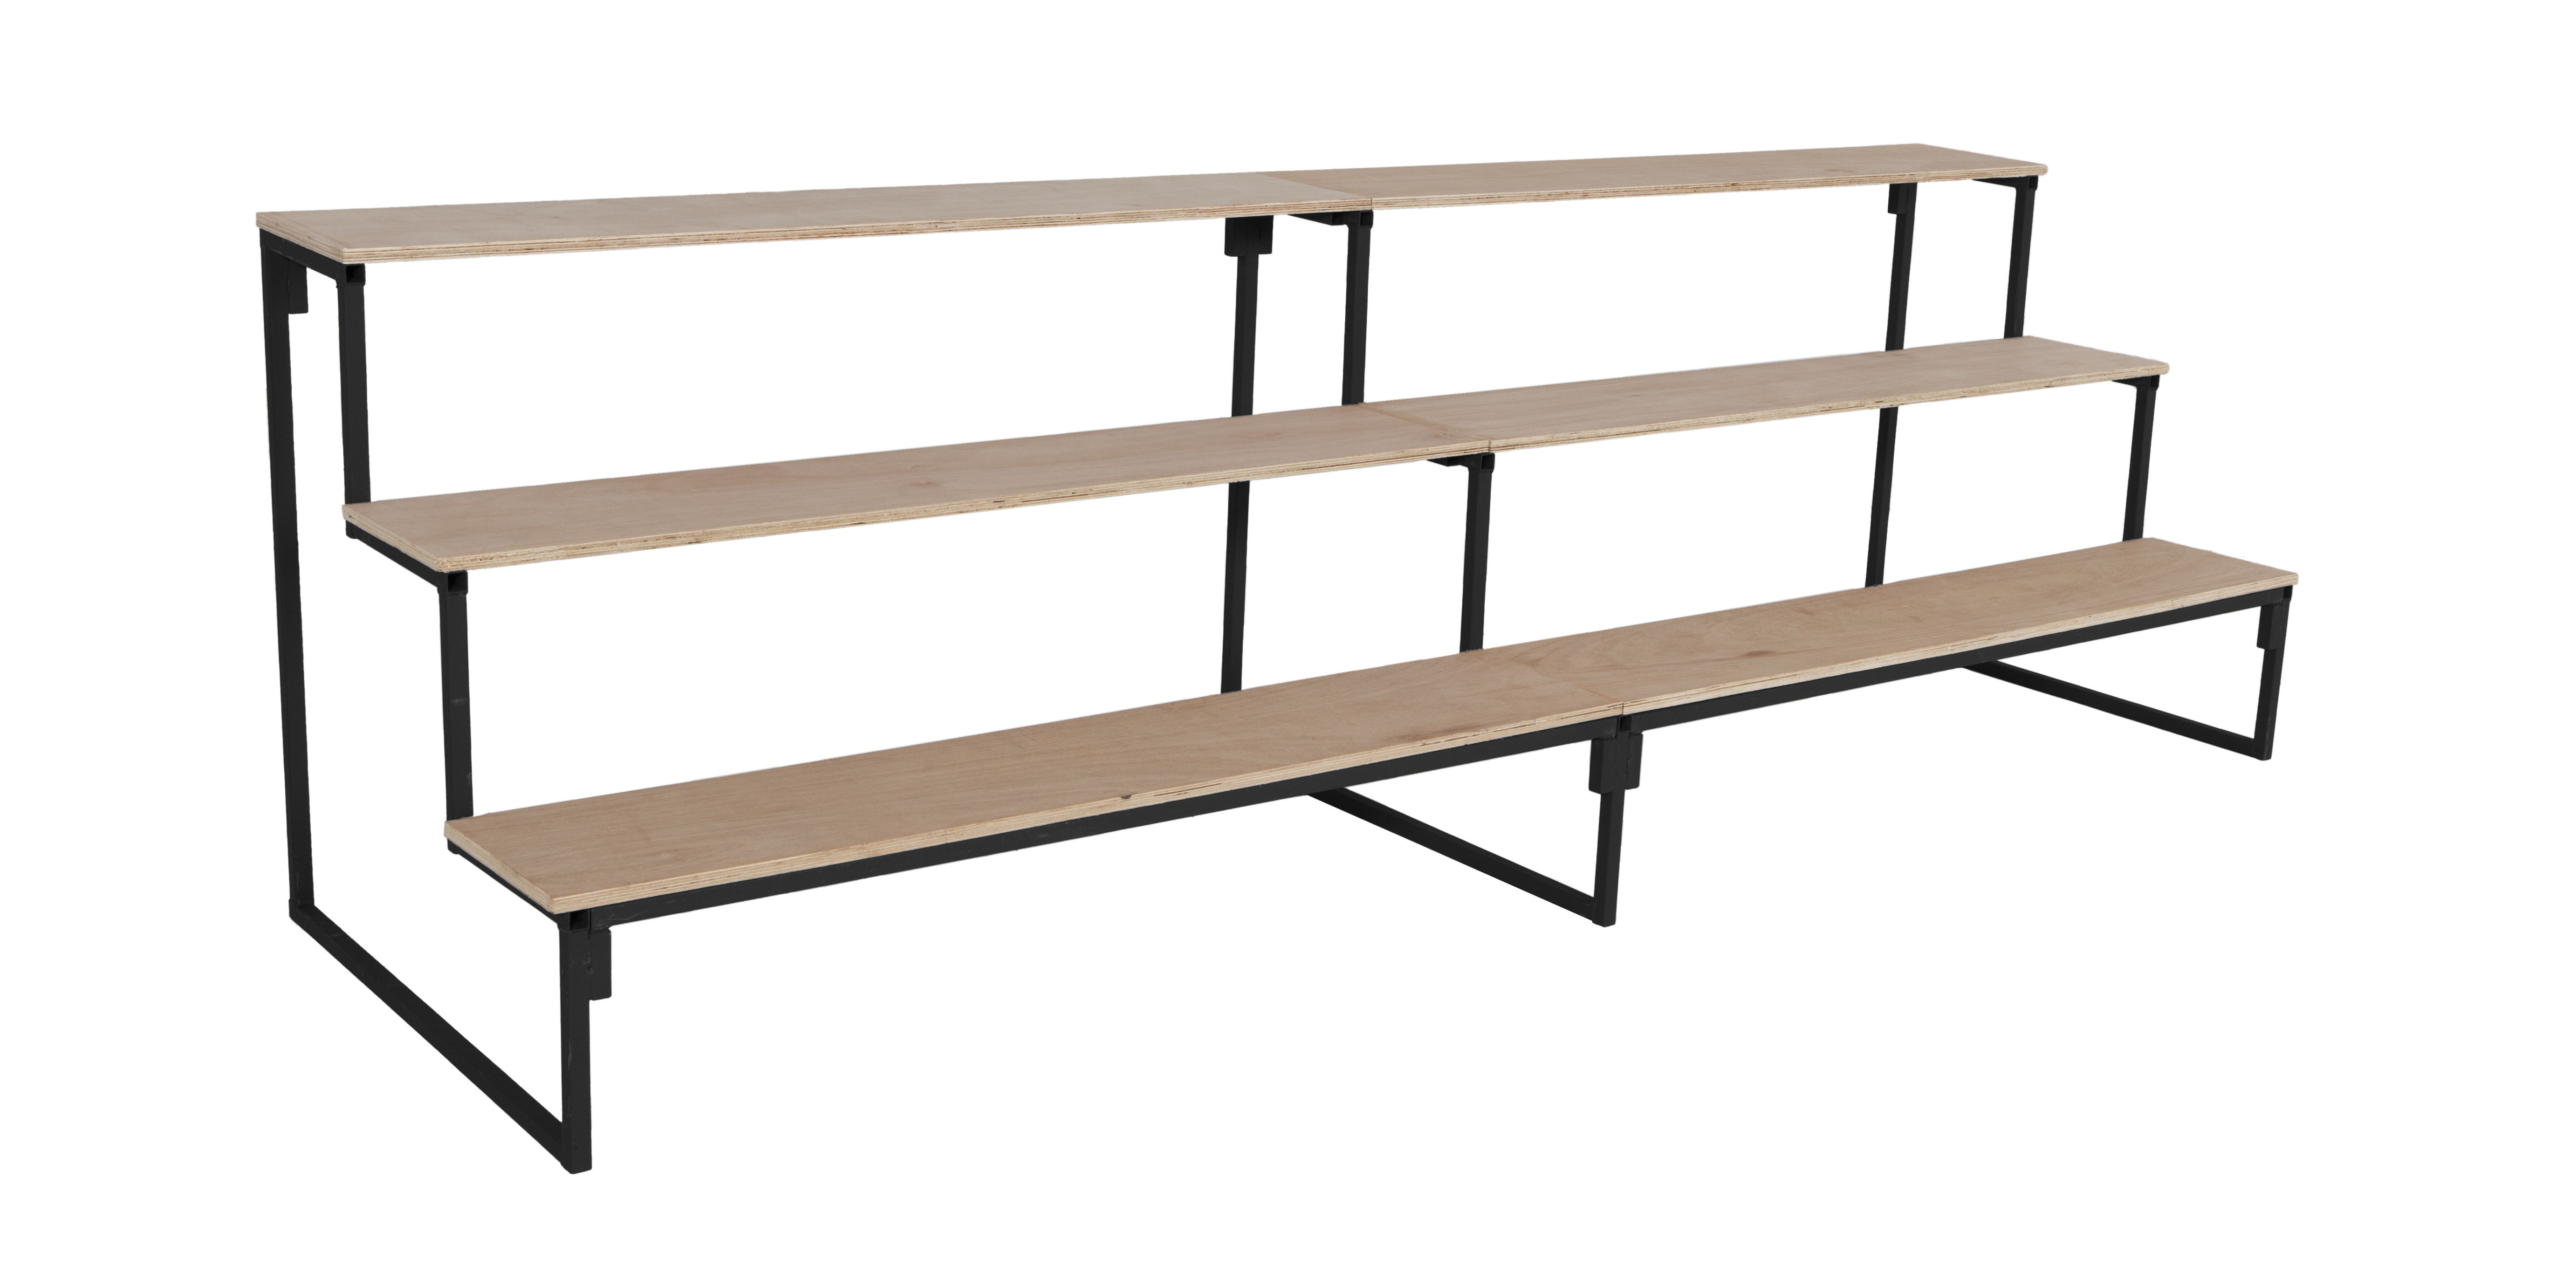 Stepped Shelf Units